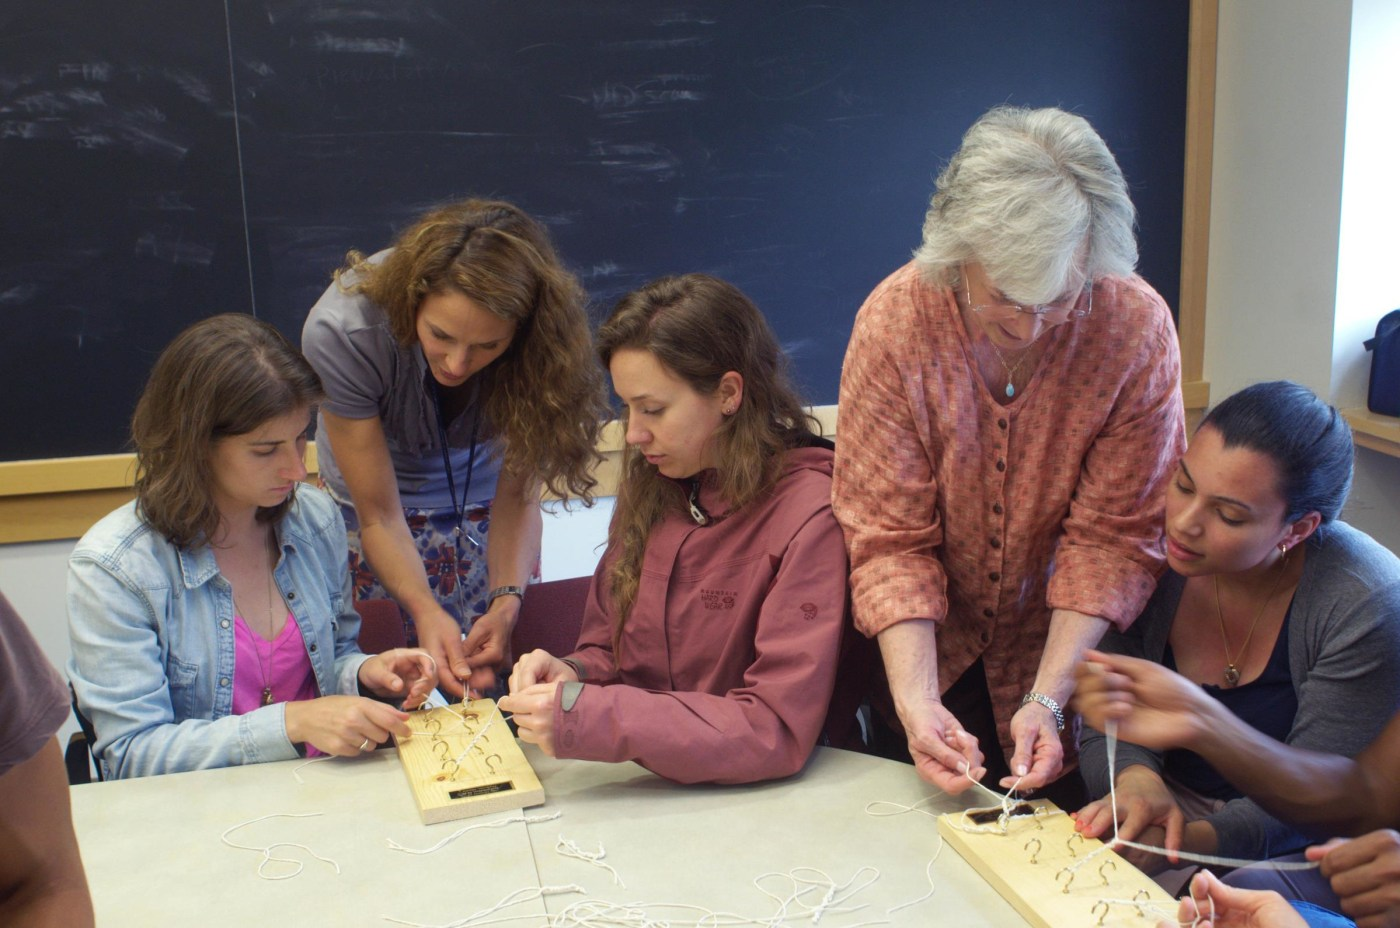 Sam Kaplan, Jessica Johnston, and Jessica Buckley get help in knot-tying from Rebecca Pringle and Sue Richman.